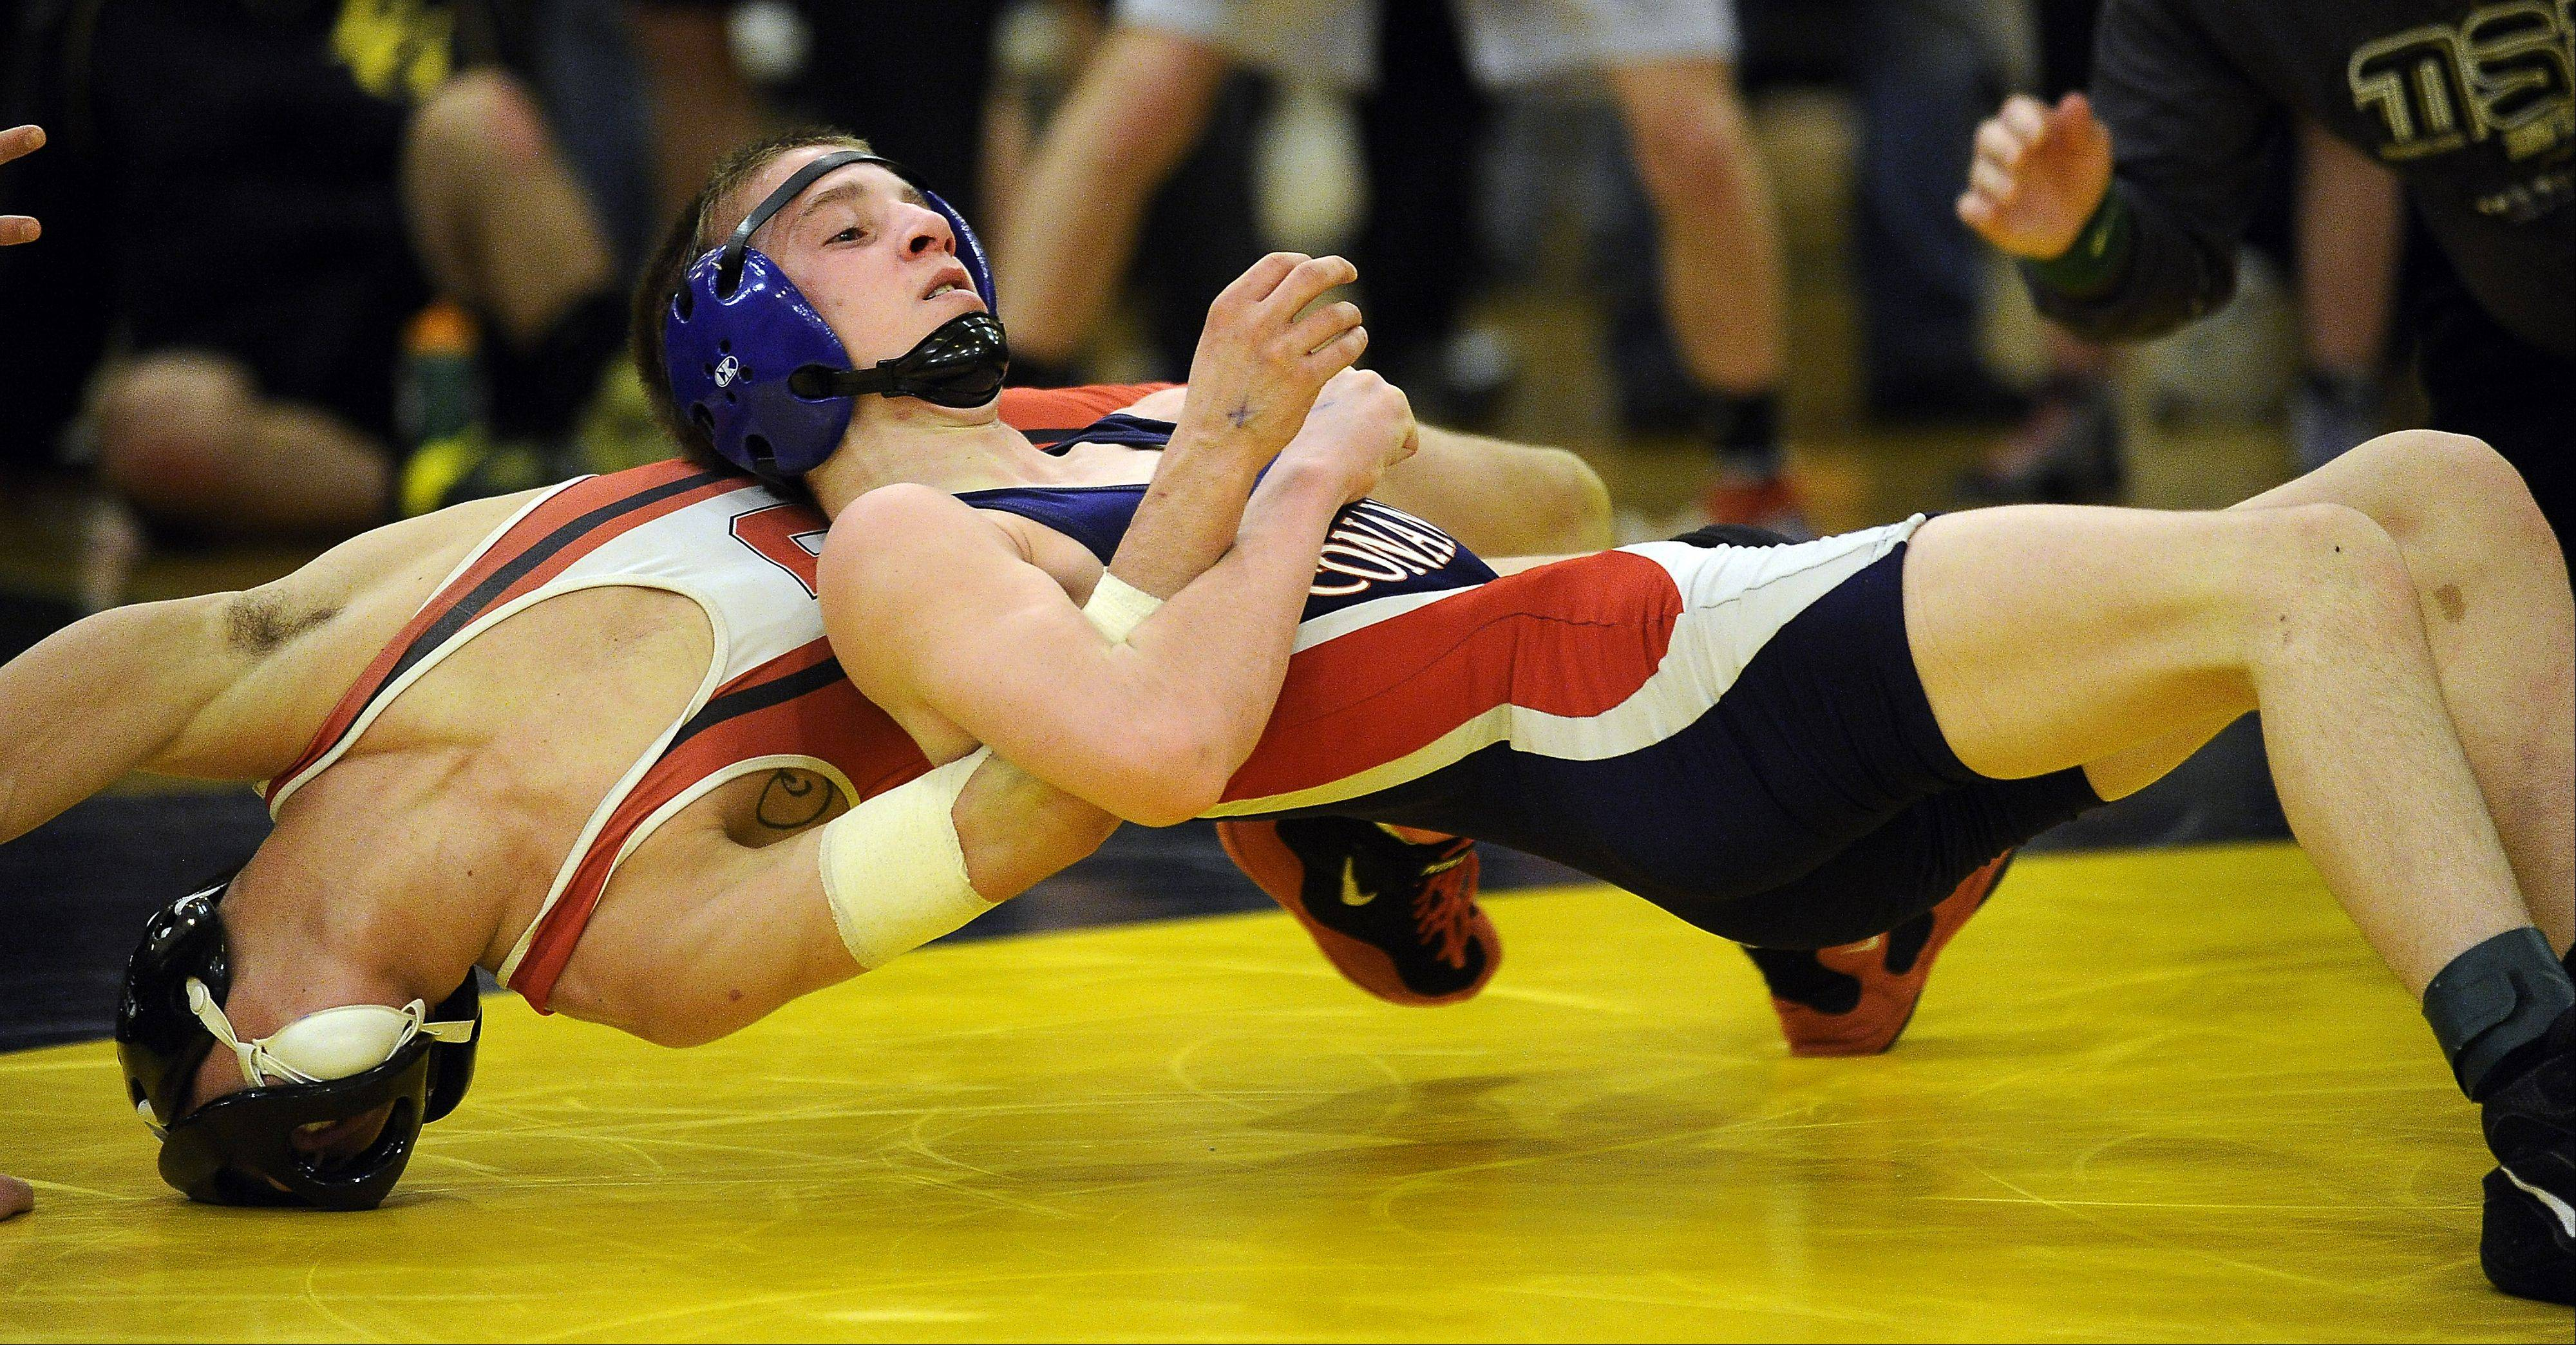 Conant's Bobby Alexander, top, leads a team with MSL title hopes in the conference meet at Hersey this weekend.